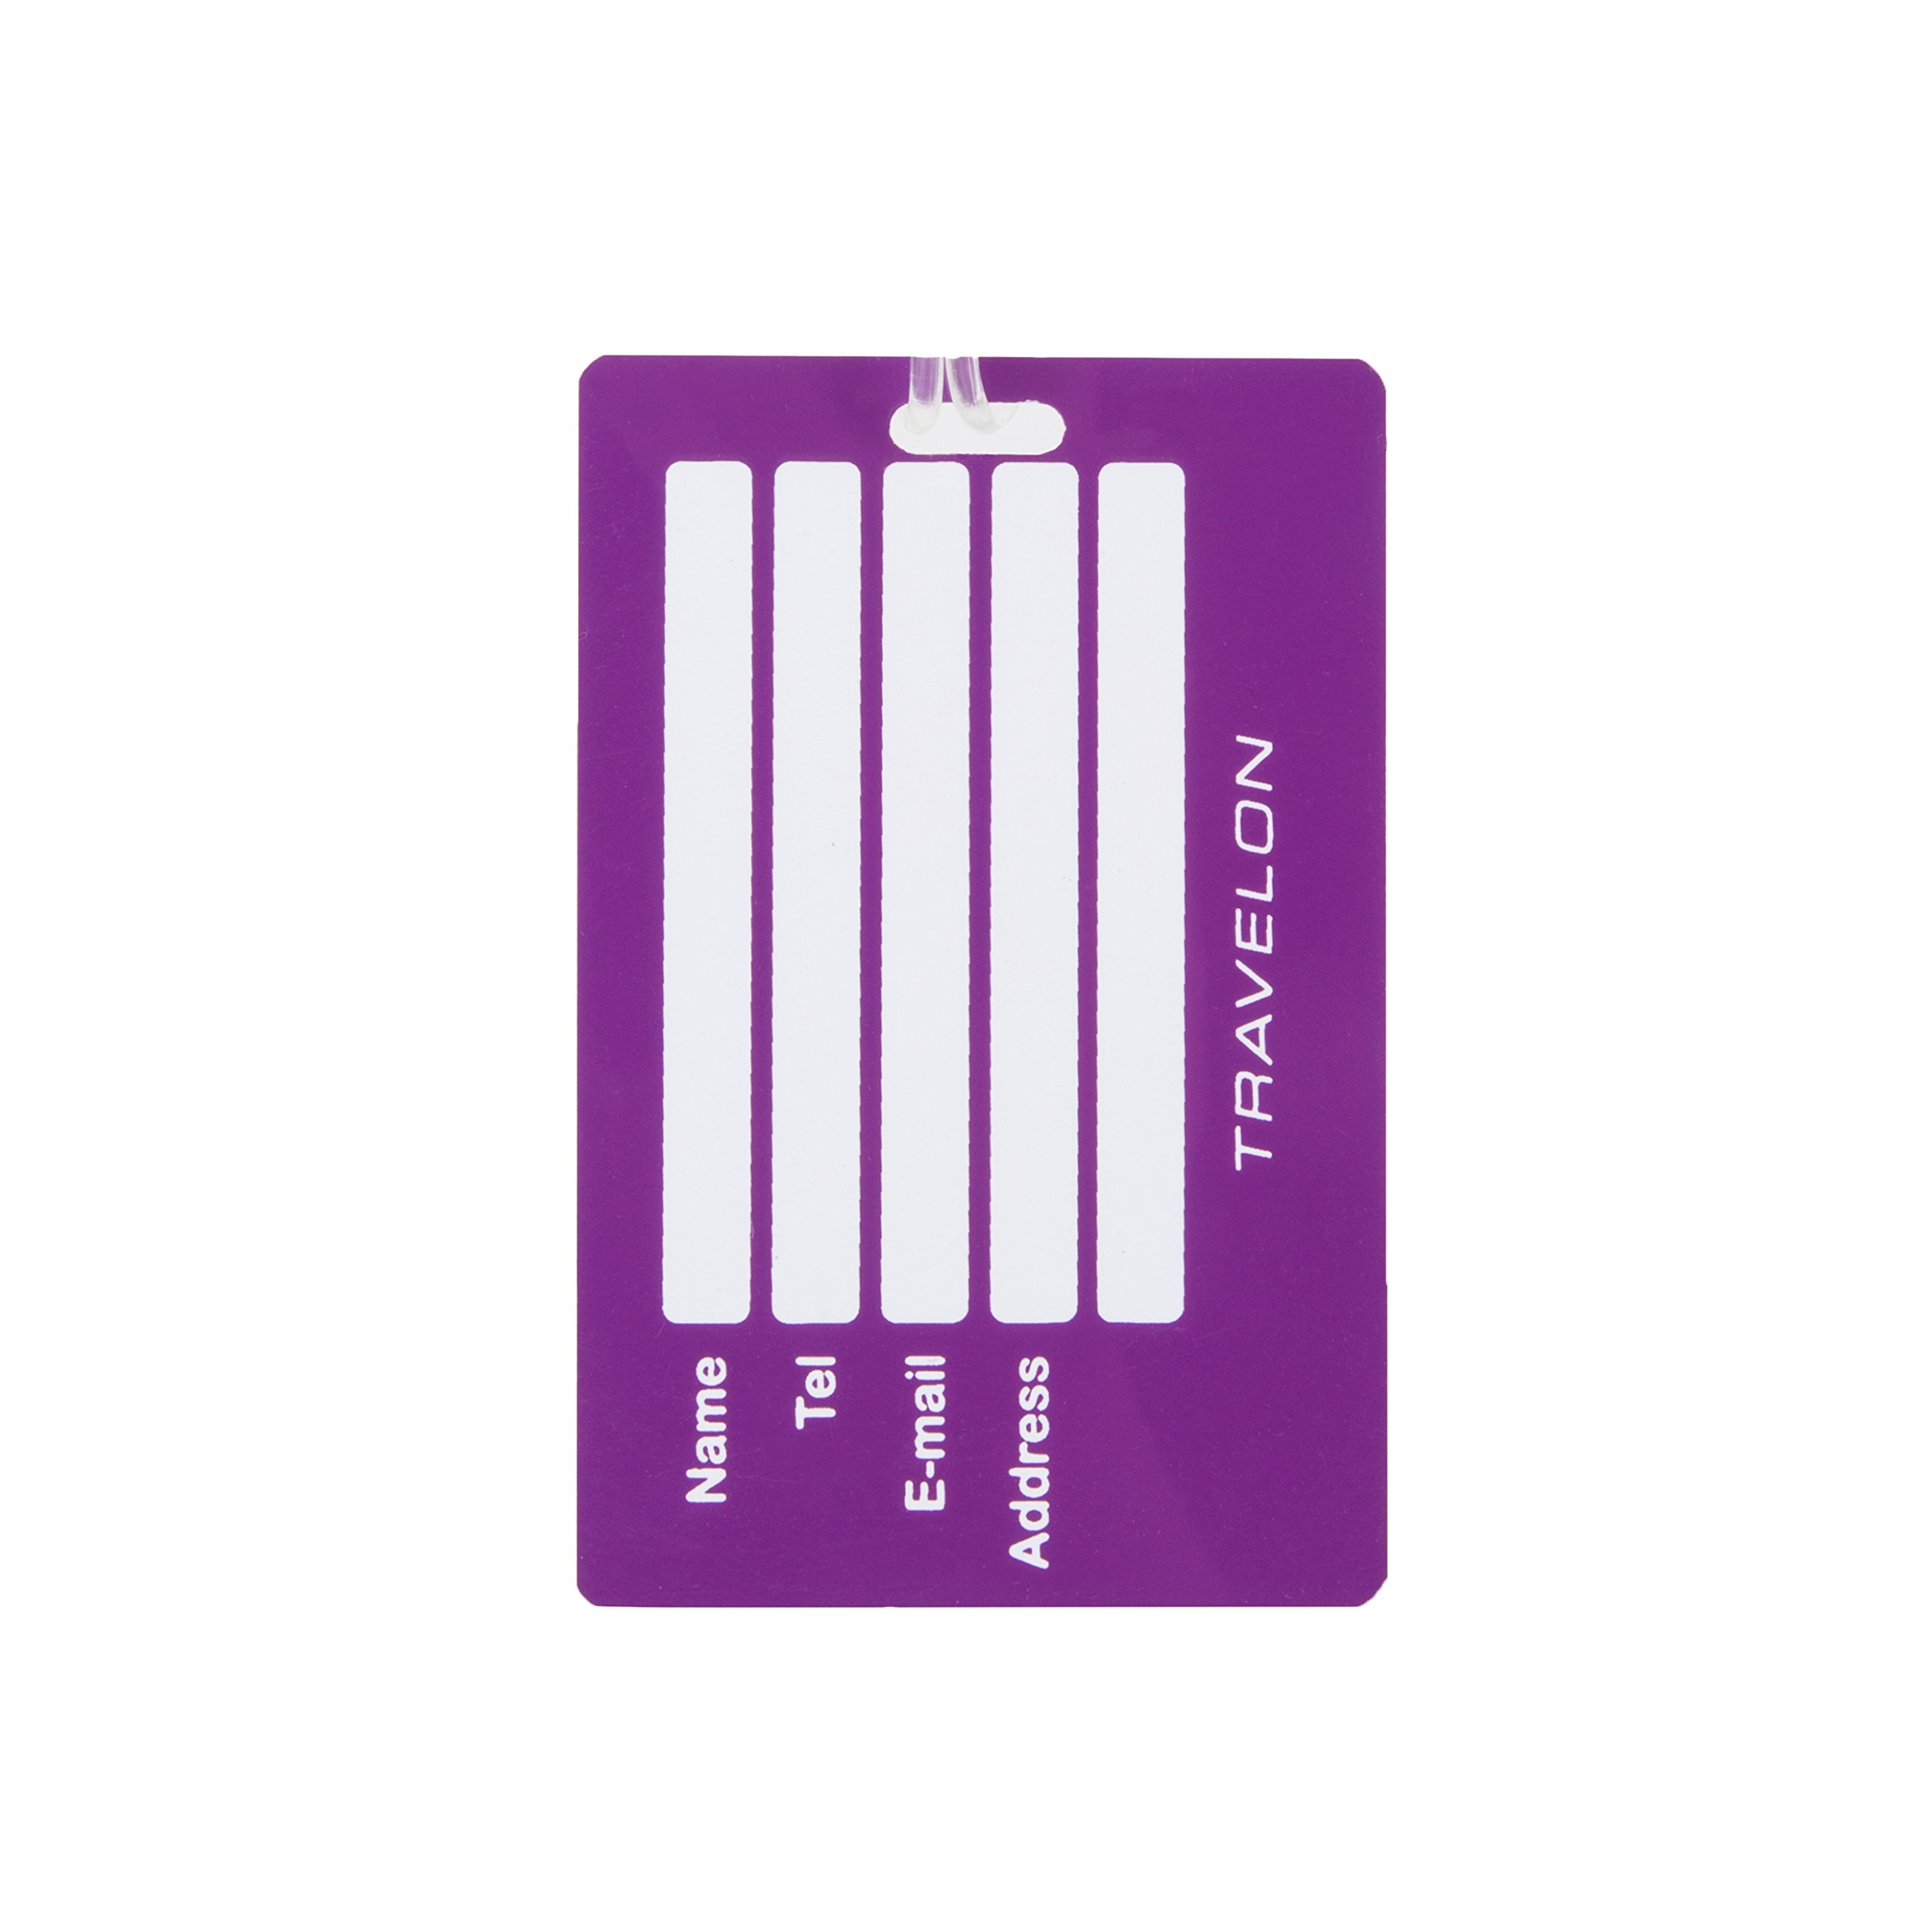 Travelon Personal Expression Luggage Tag,Sorry by Travelon (Image #2)